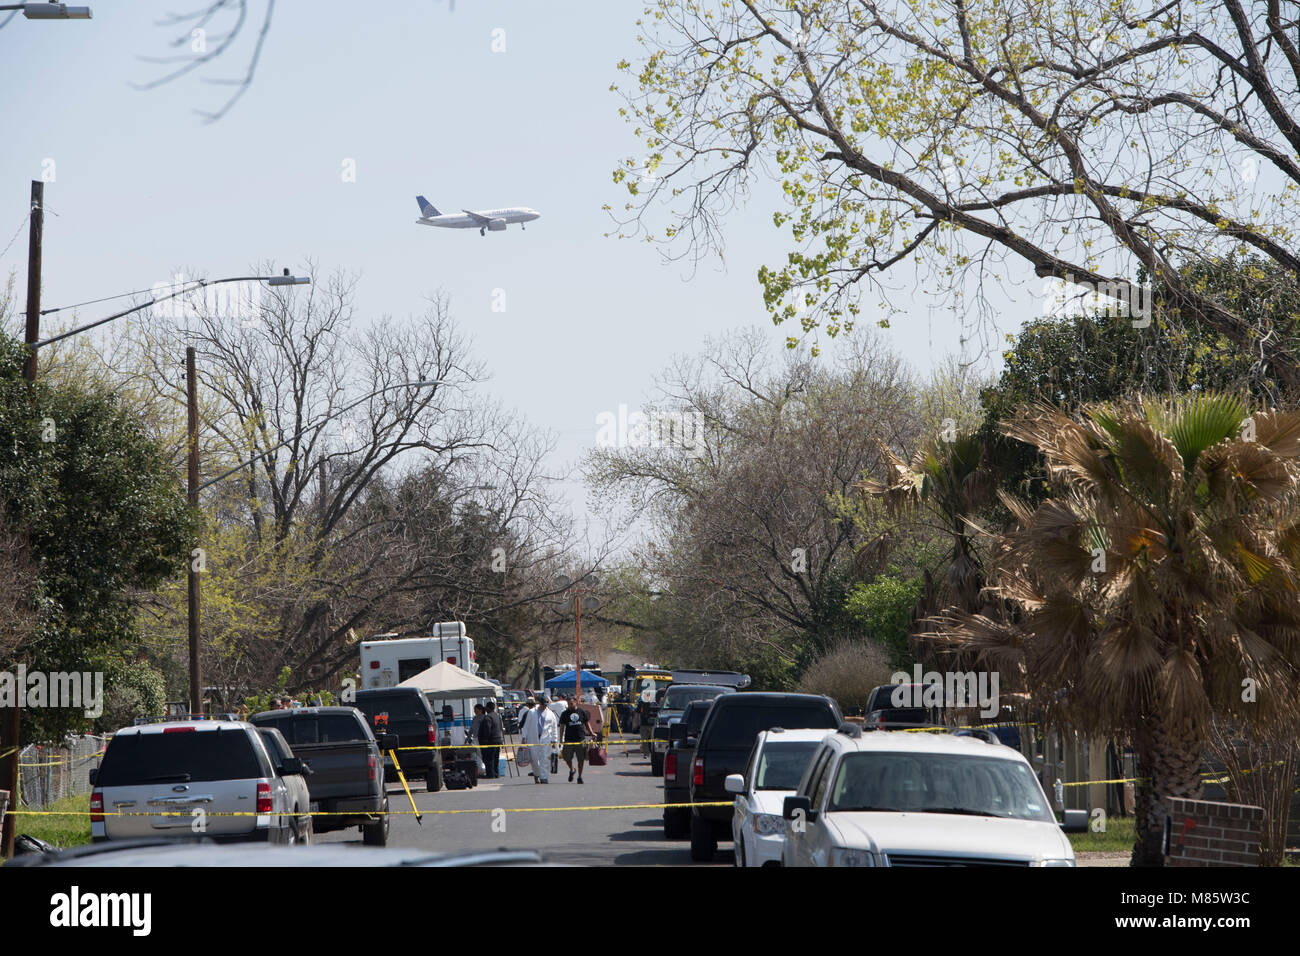 Austin, Texas March 14, 2018: Commercial airliner descends for landing at nearby airport as FBI and ATF agents continue - Stock Image